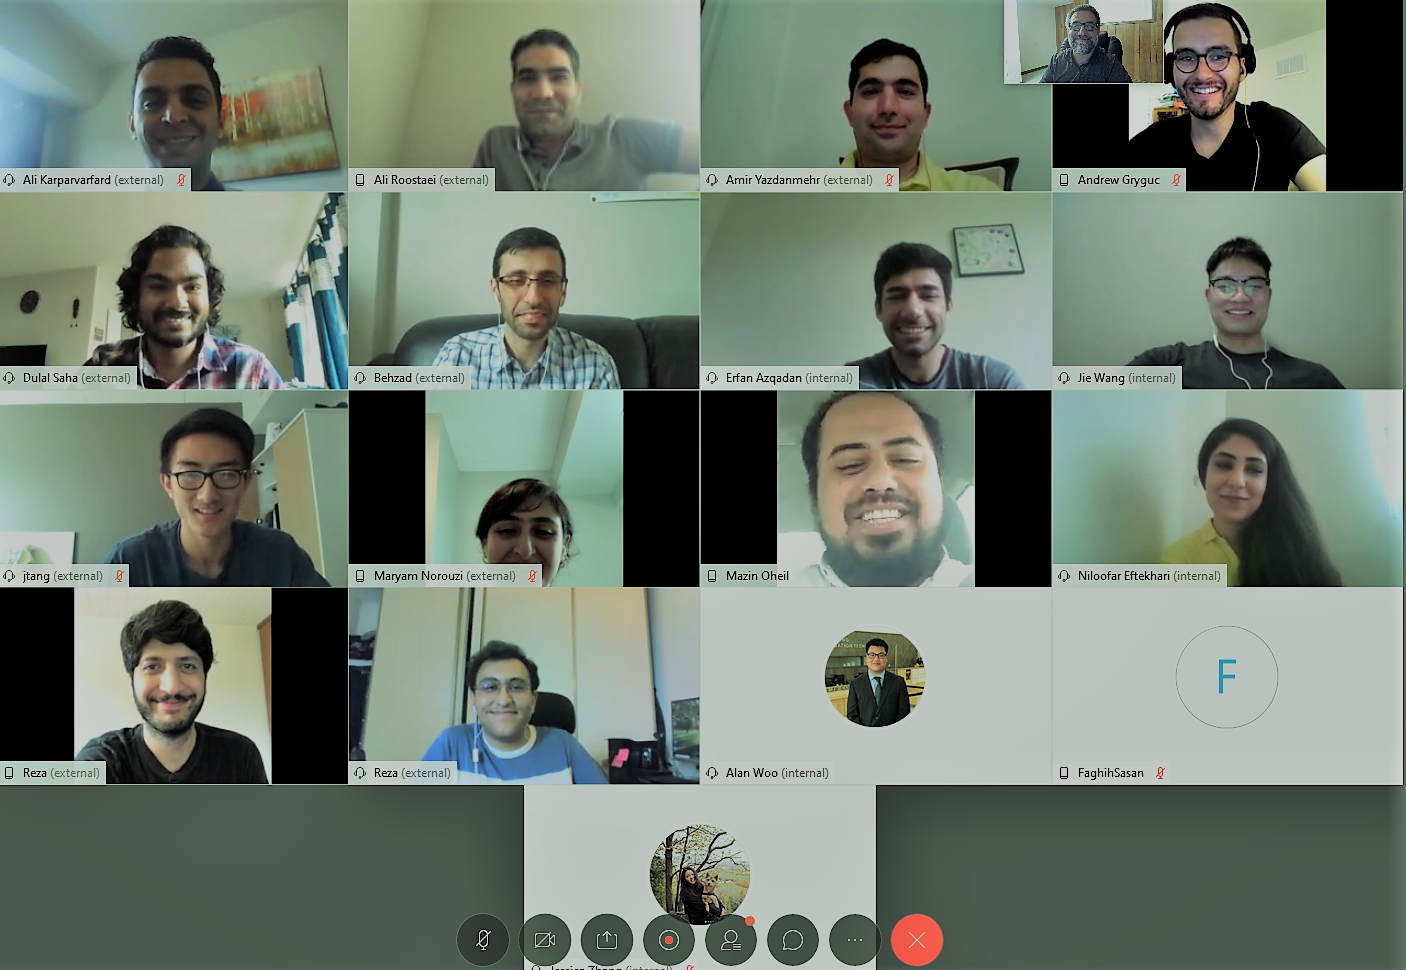 picture shown FATS Lab member video conferencing